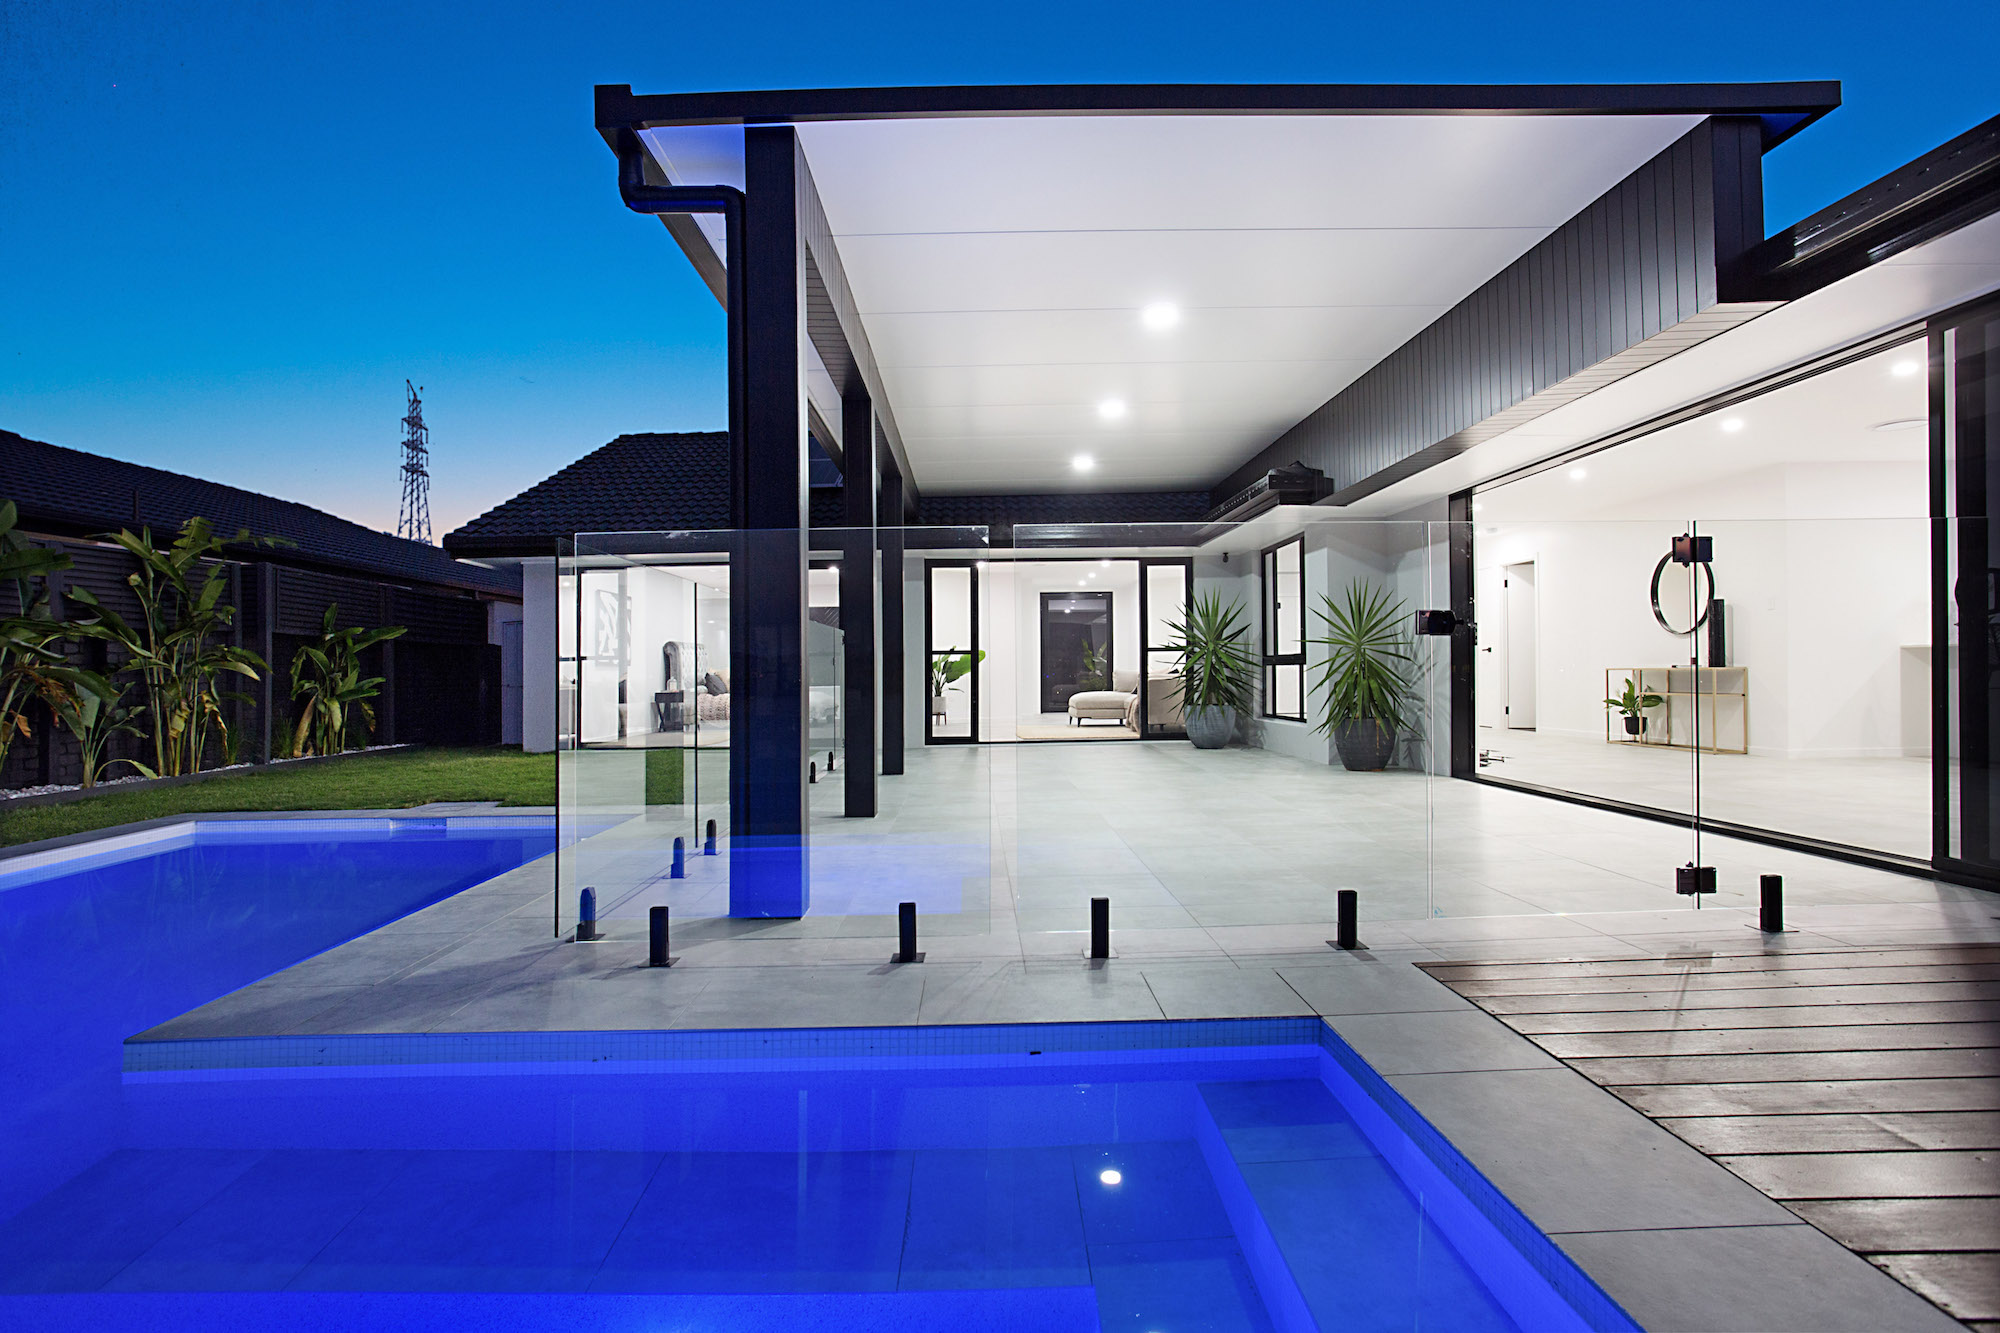 luxury outdoor living spaces, modern concrete exterior tiles and tiled pool